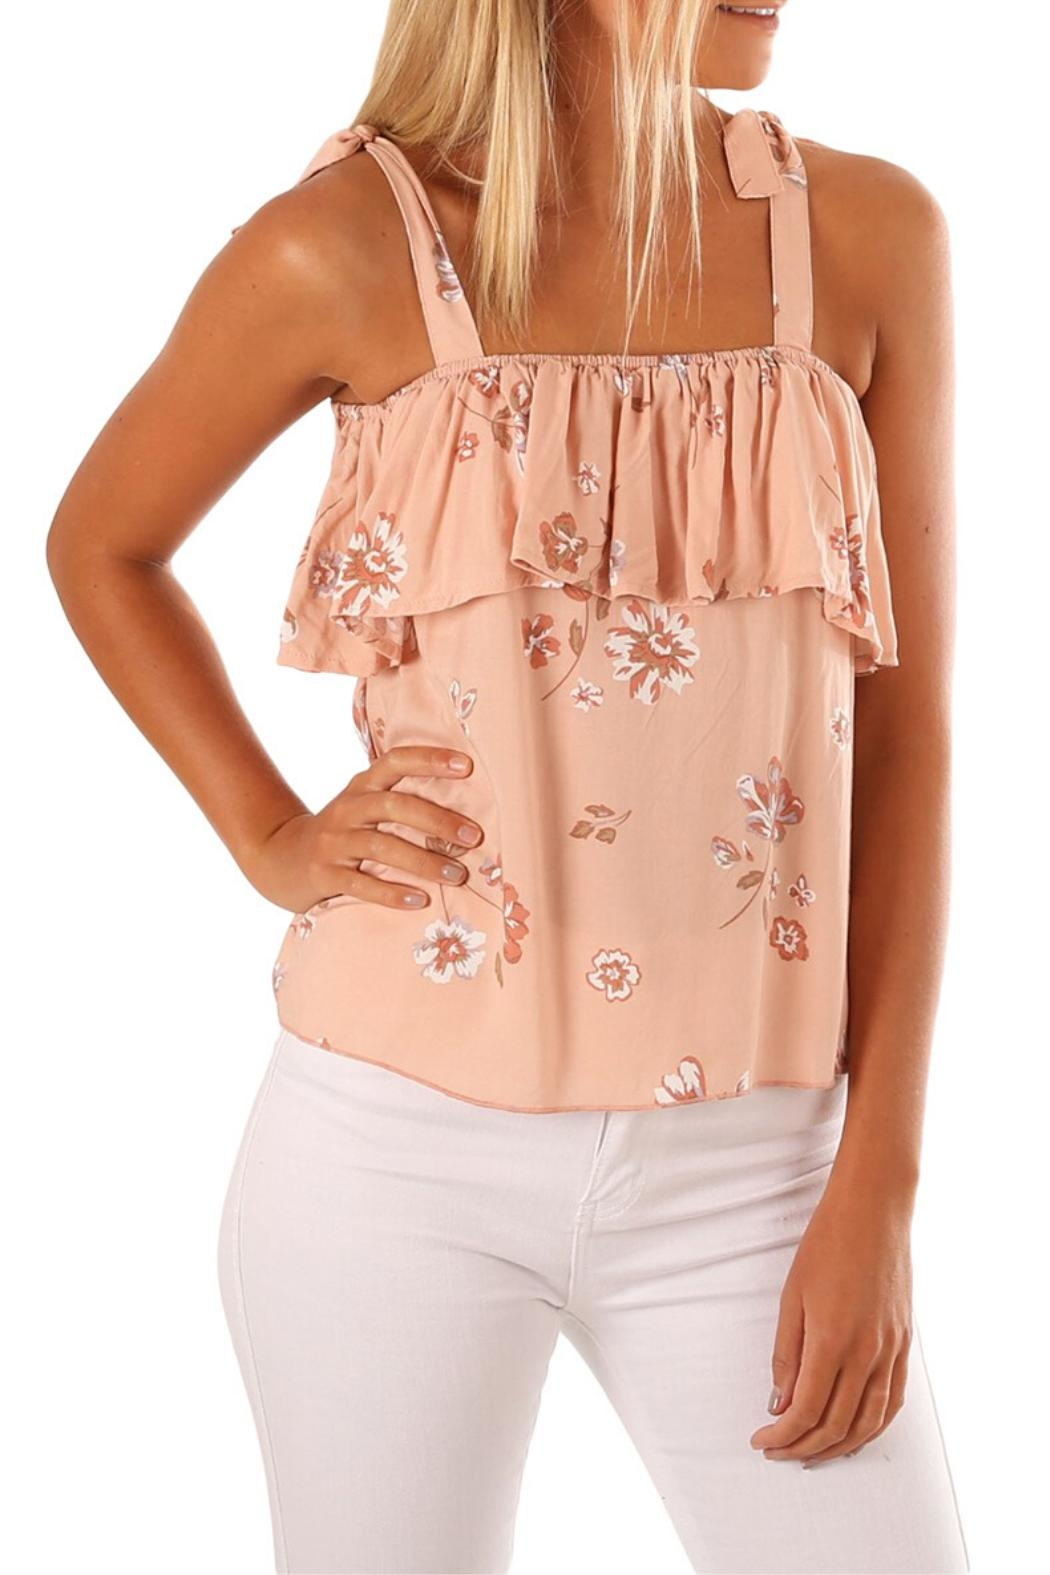 Unbranded Coral Floral Top - Main Image